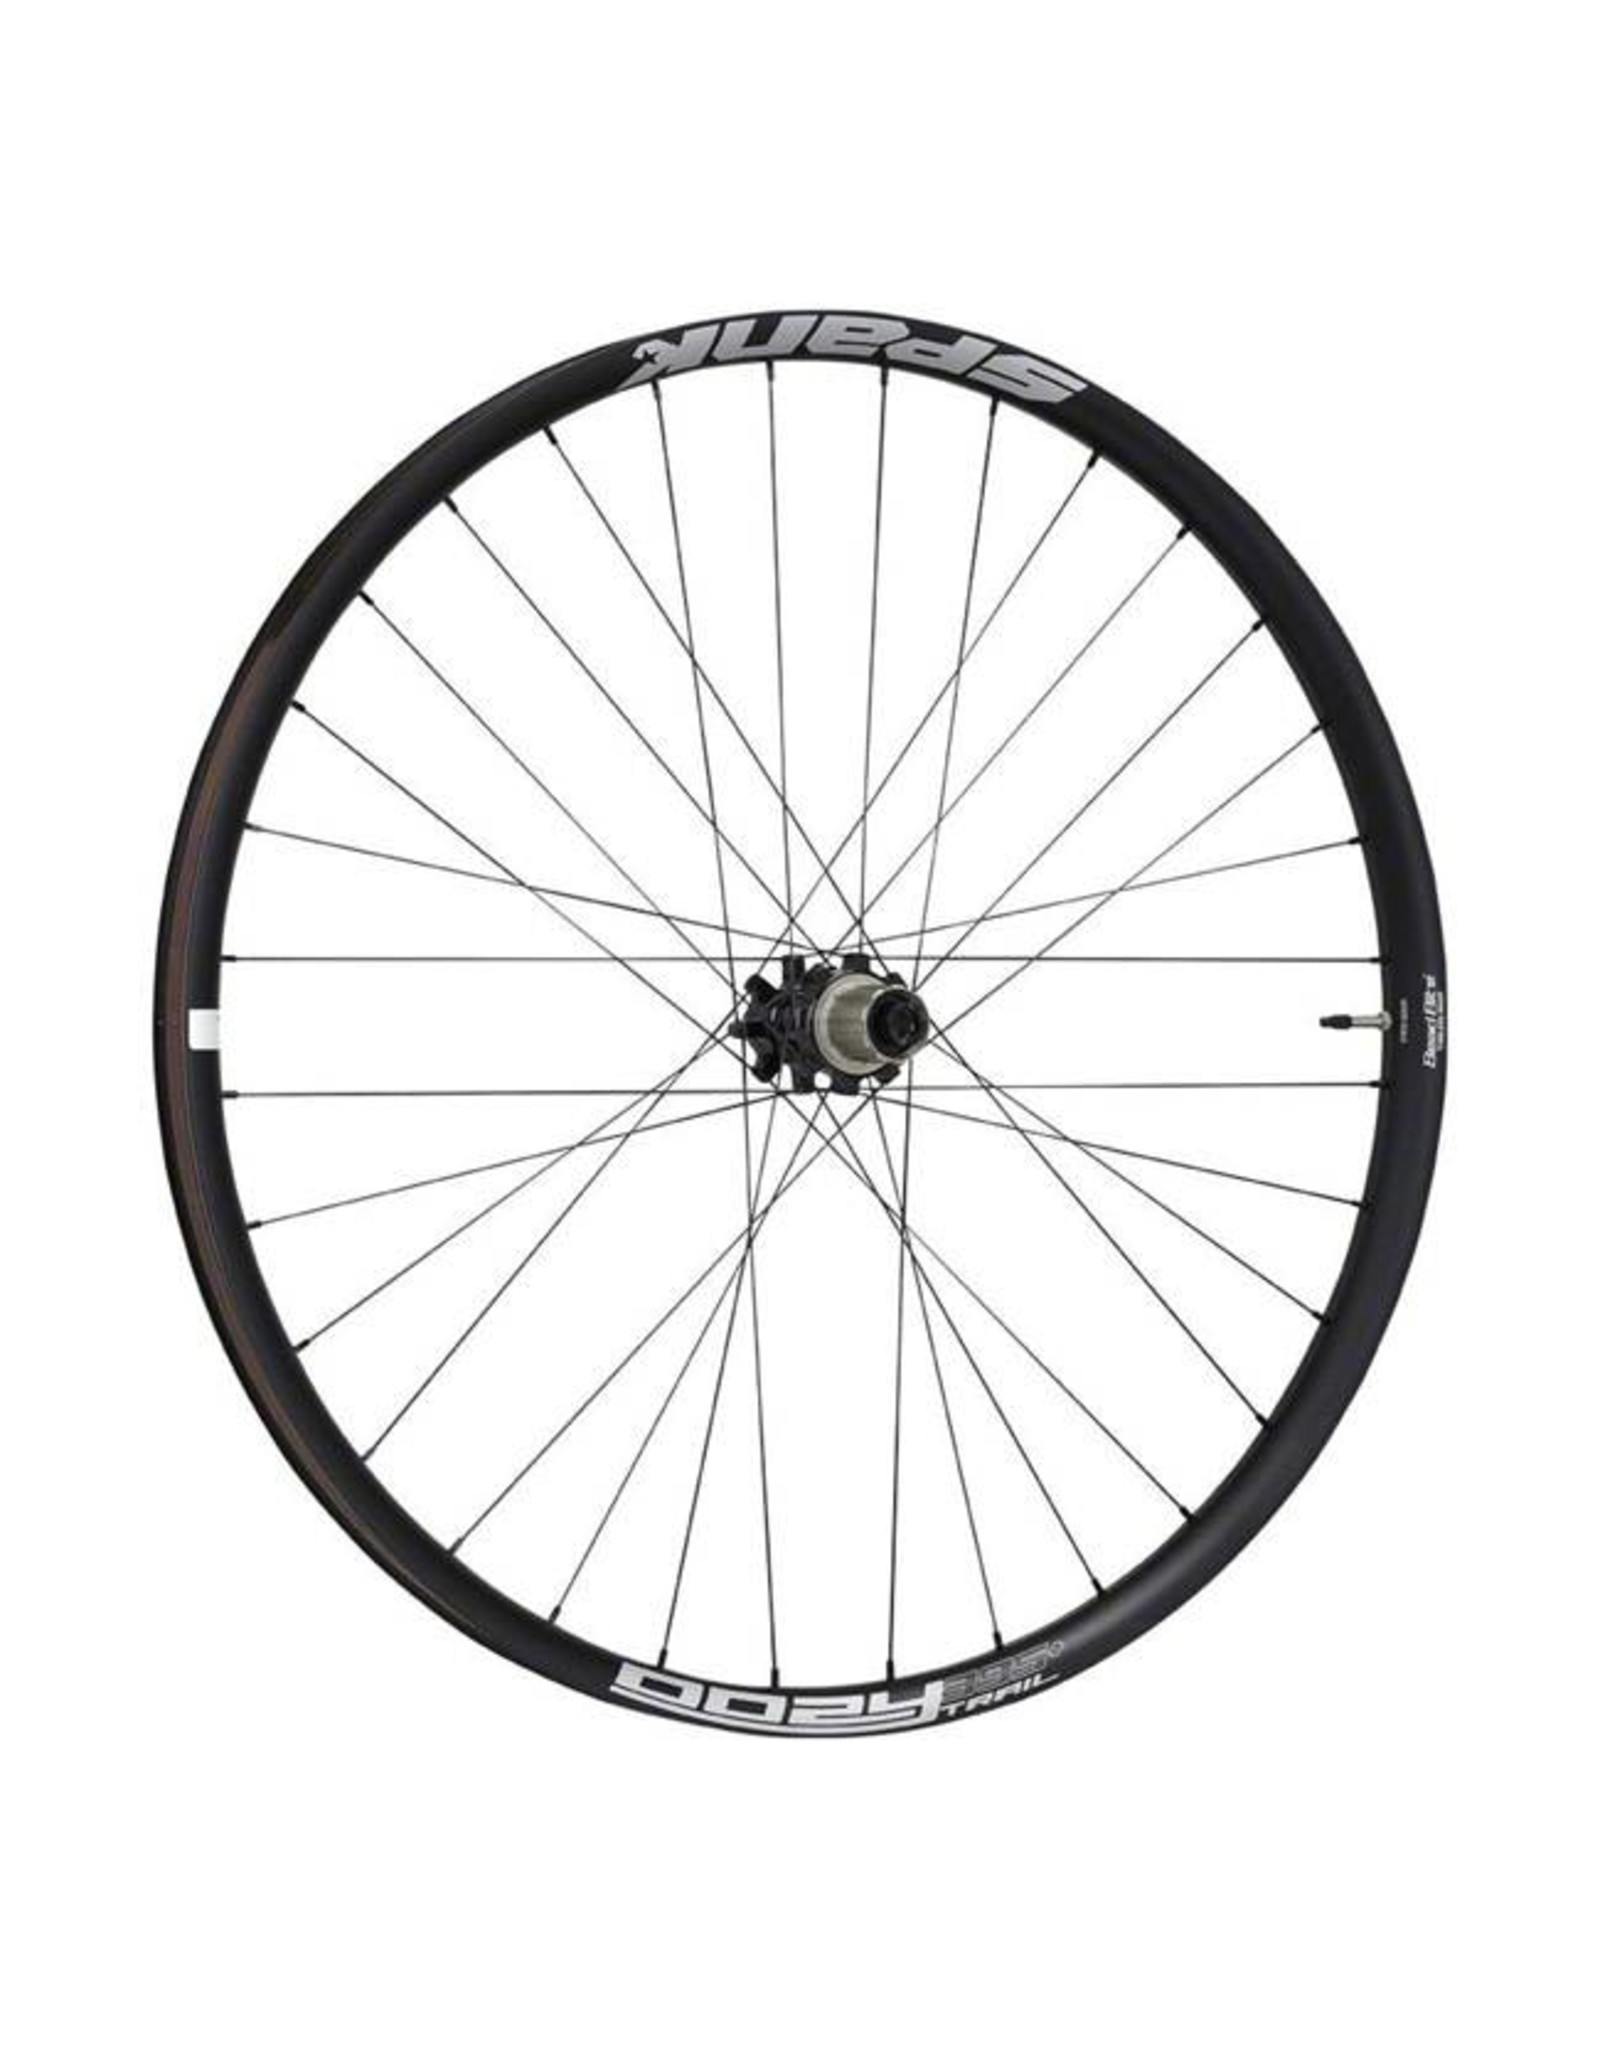 "Spank Spank Oozy Trail 395+ Boost Wheelset: 29"" 15 x 110mm Front 12 x 148mm Rear XD Driver, Black"